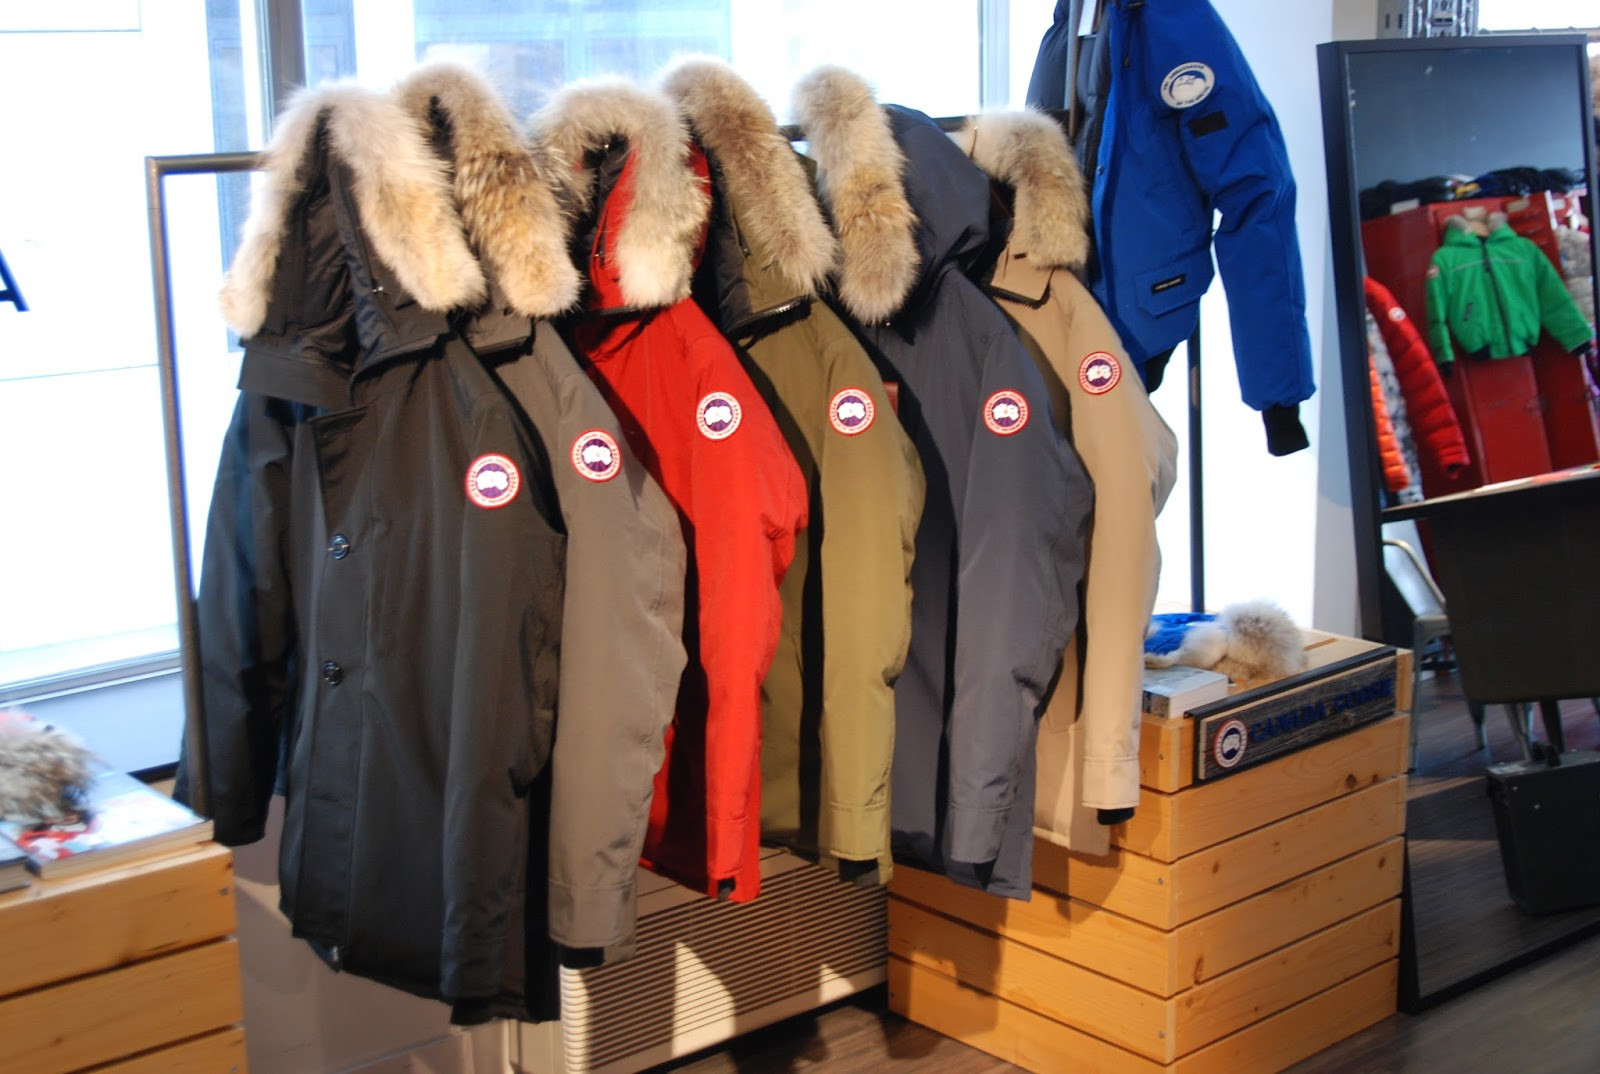 Canada Goose womens replica 2016 - CHAD'S DRYGOODS: CANADA GOOSE PROUDLY MADE IN CANADA